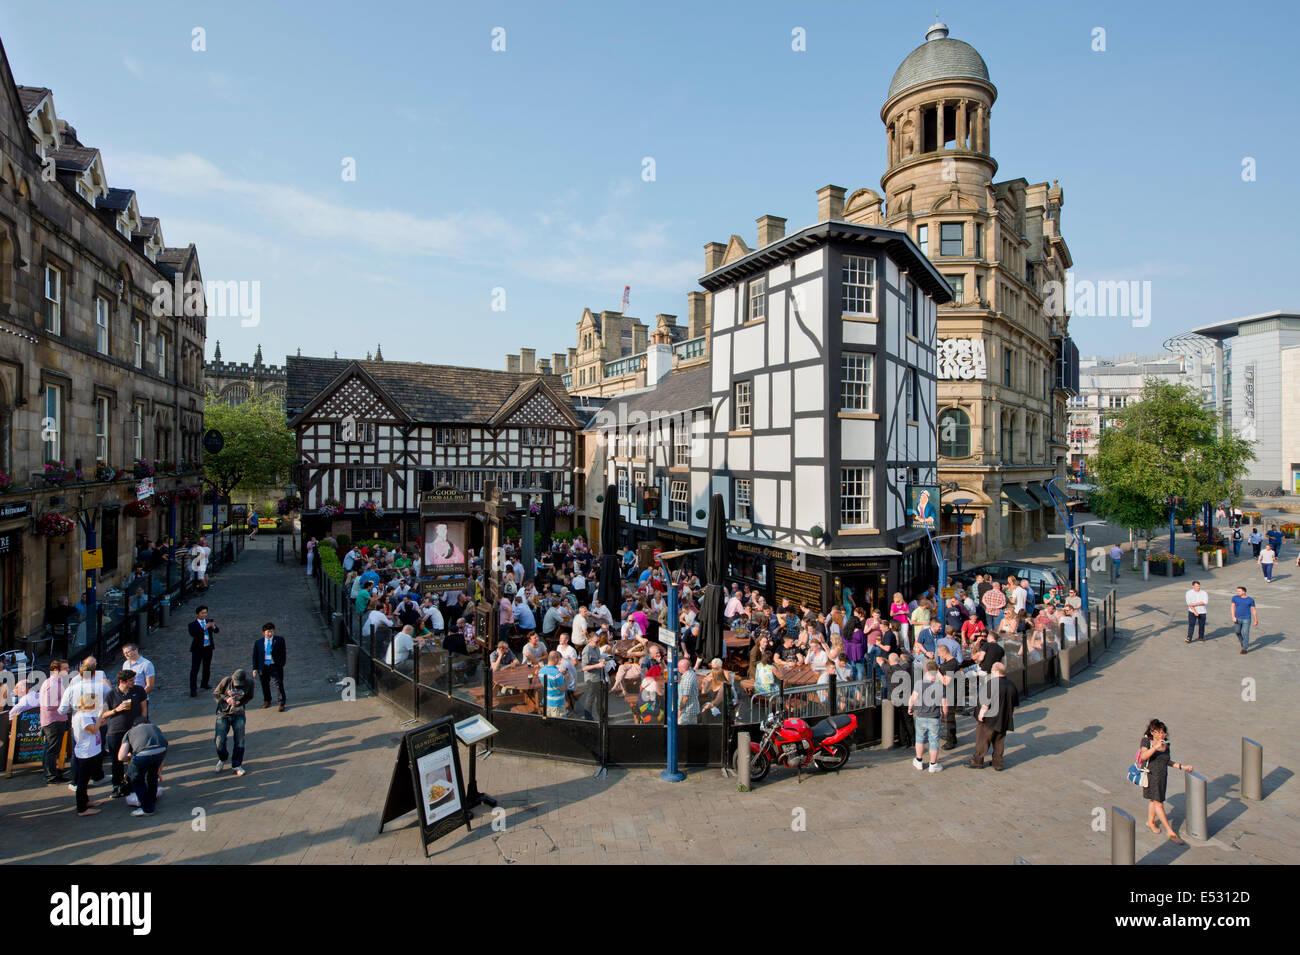 Manchester, UK. 18th July, 2014. People enjoy a beer in the hot weather after work on Britain's hottest day. - Stock Image